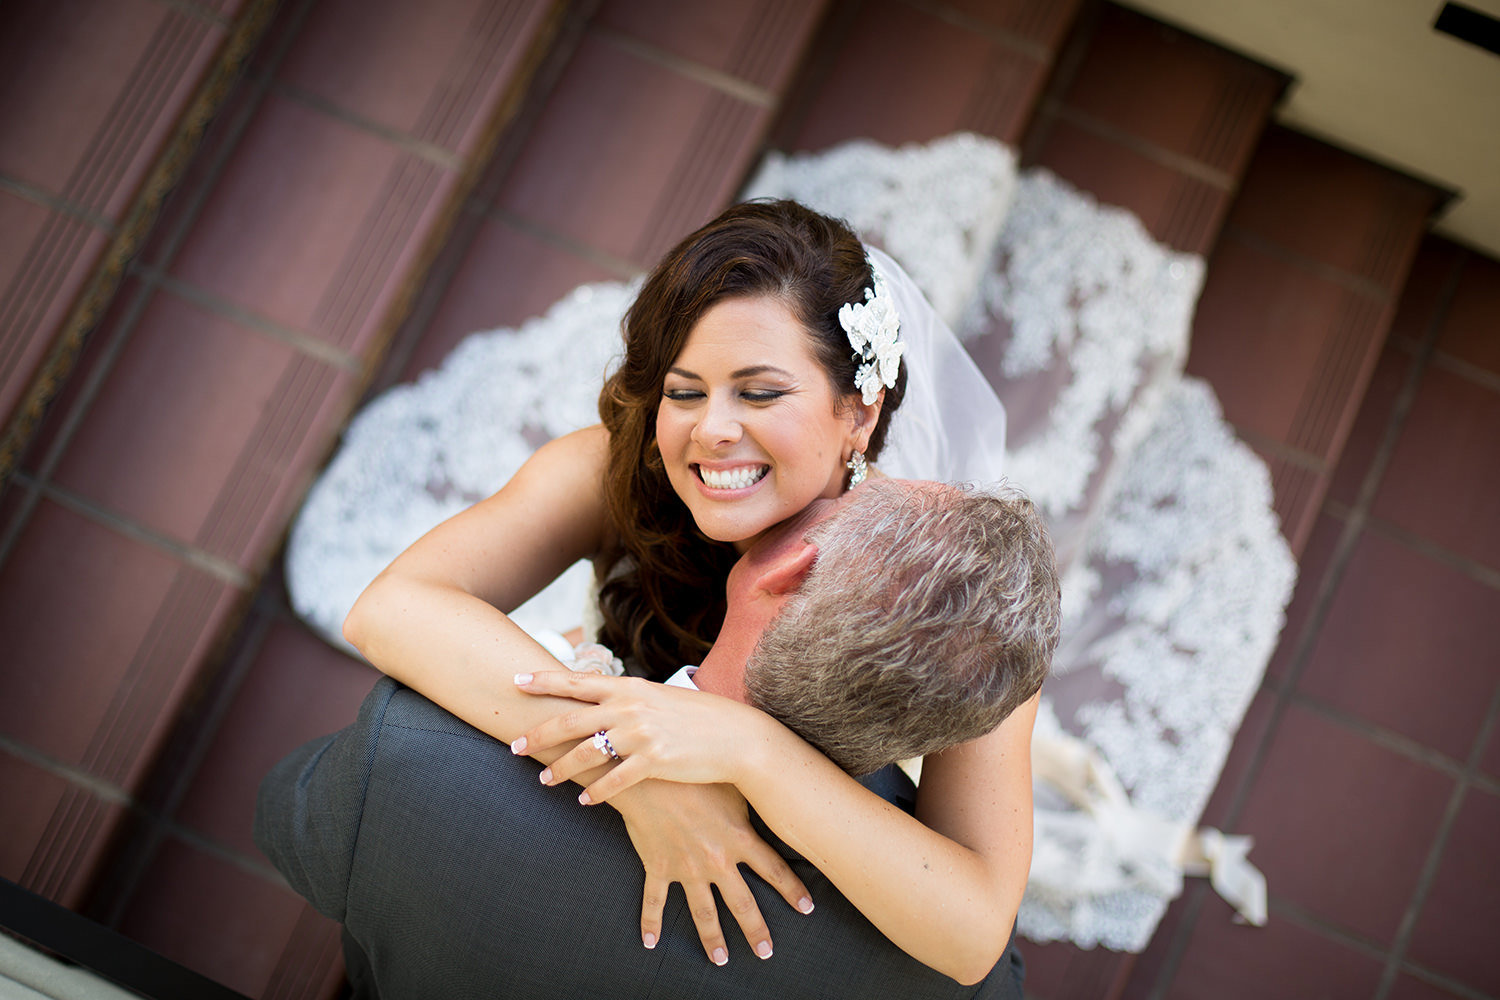 Romantic moment on the stairs with bride and groom